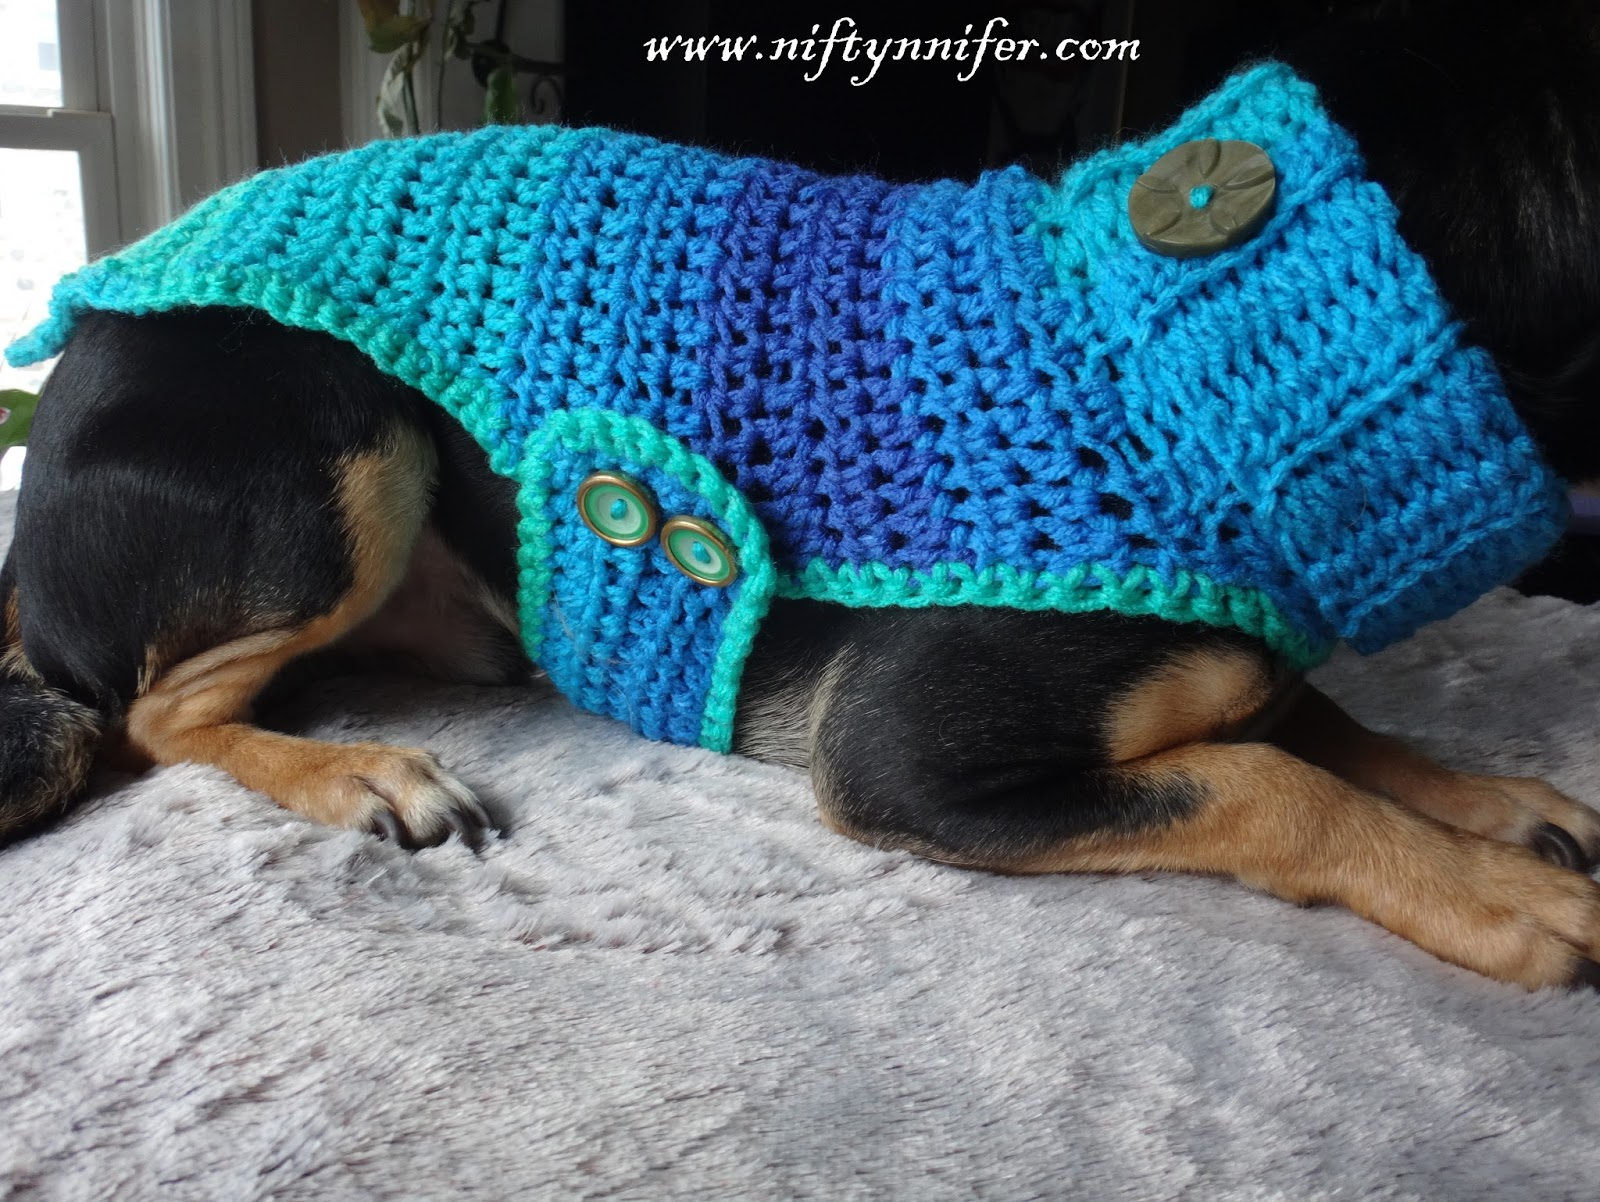 Niftynnifer\'s Crochet & Crafts: Free Crochet Pattern ~Chihuahua Sweater